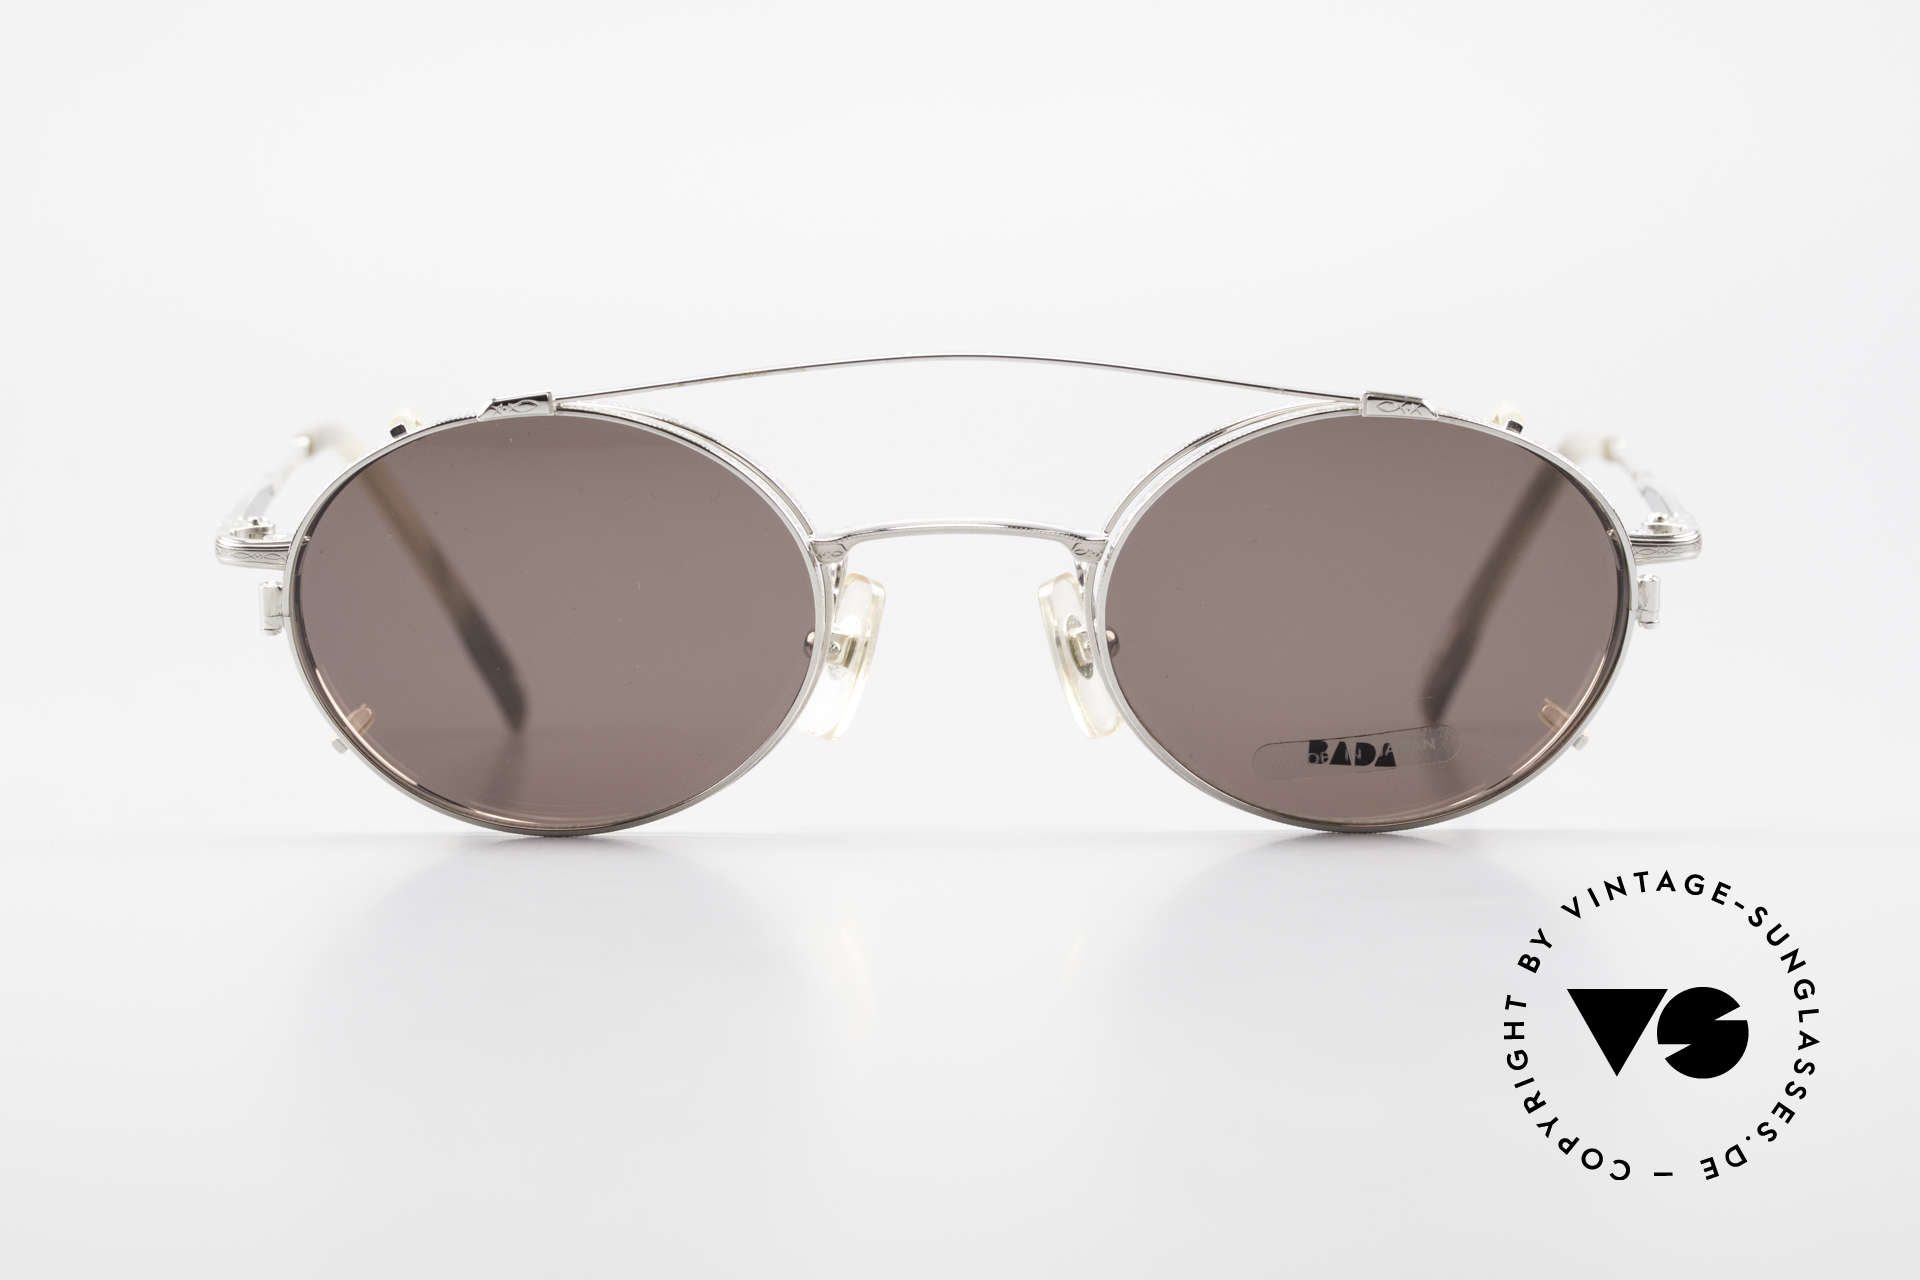 Bada BL1581 90's Eyeglasses With Clip On, designed in Los Angeles and produced in Sabae (Japan), Made for Men and Women